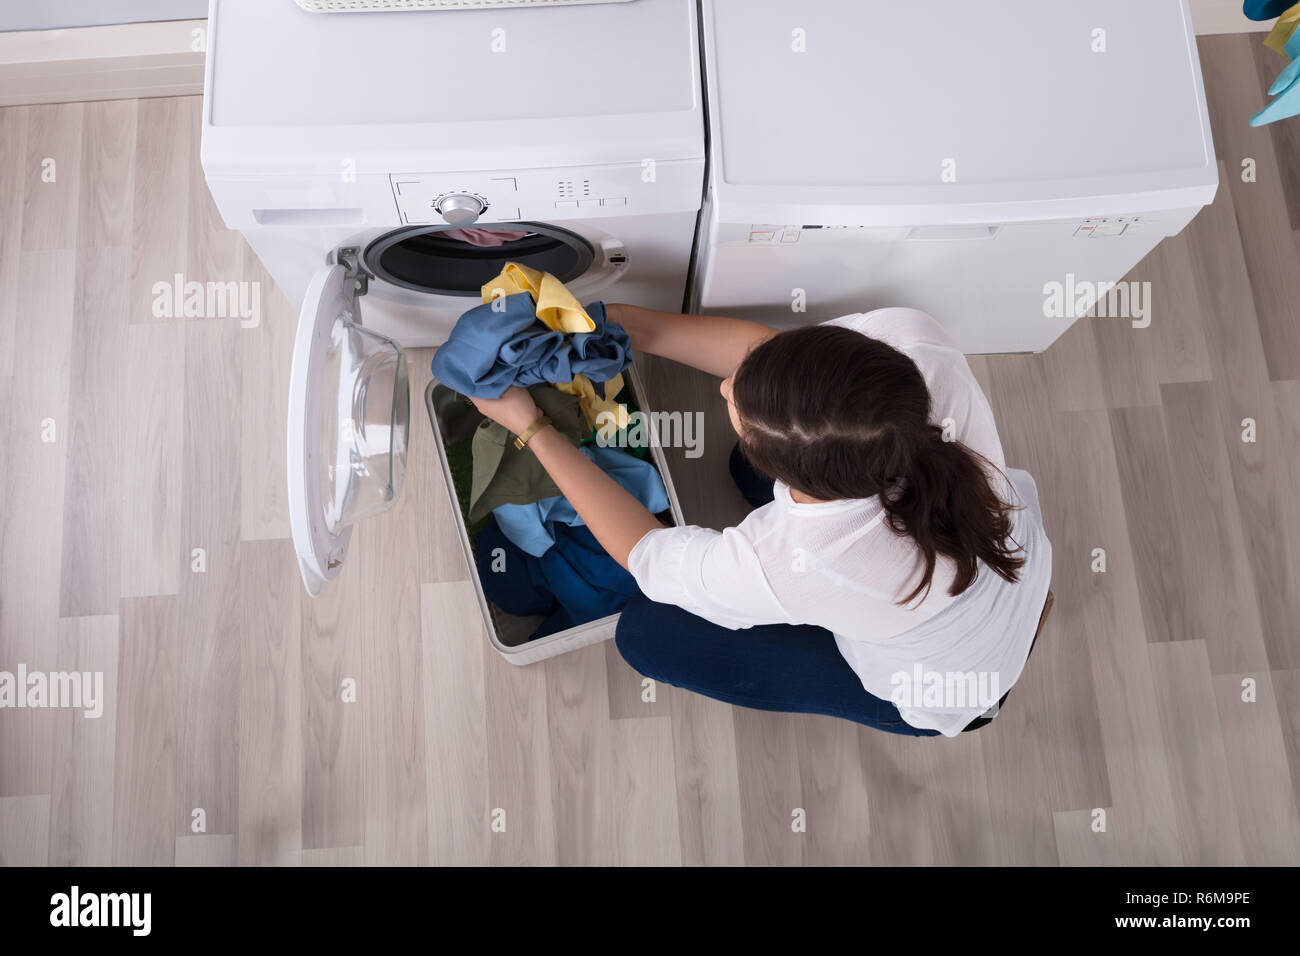 Elevated View Of A Woman Loading Clothes In Washing Machine Stock Photo